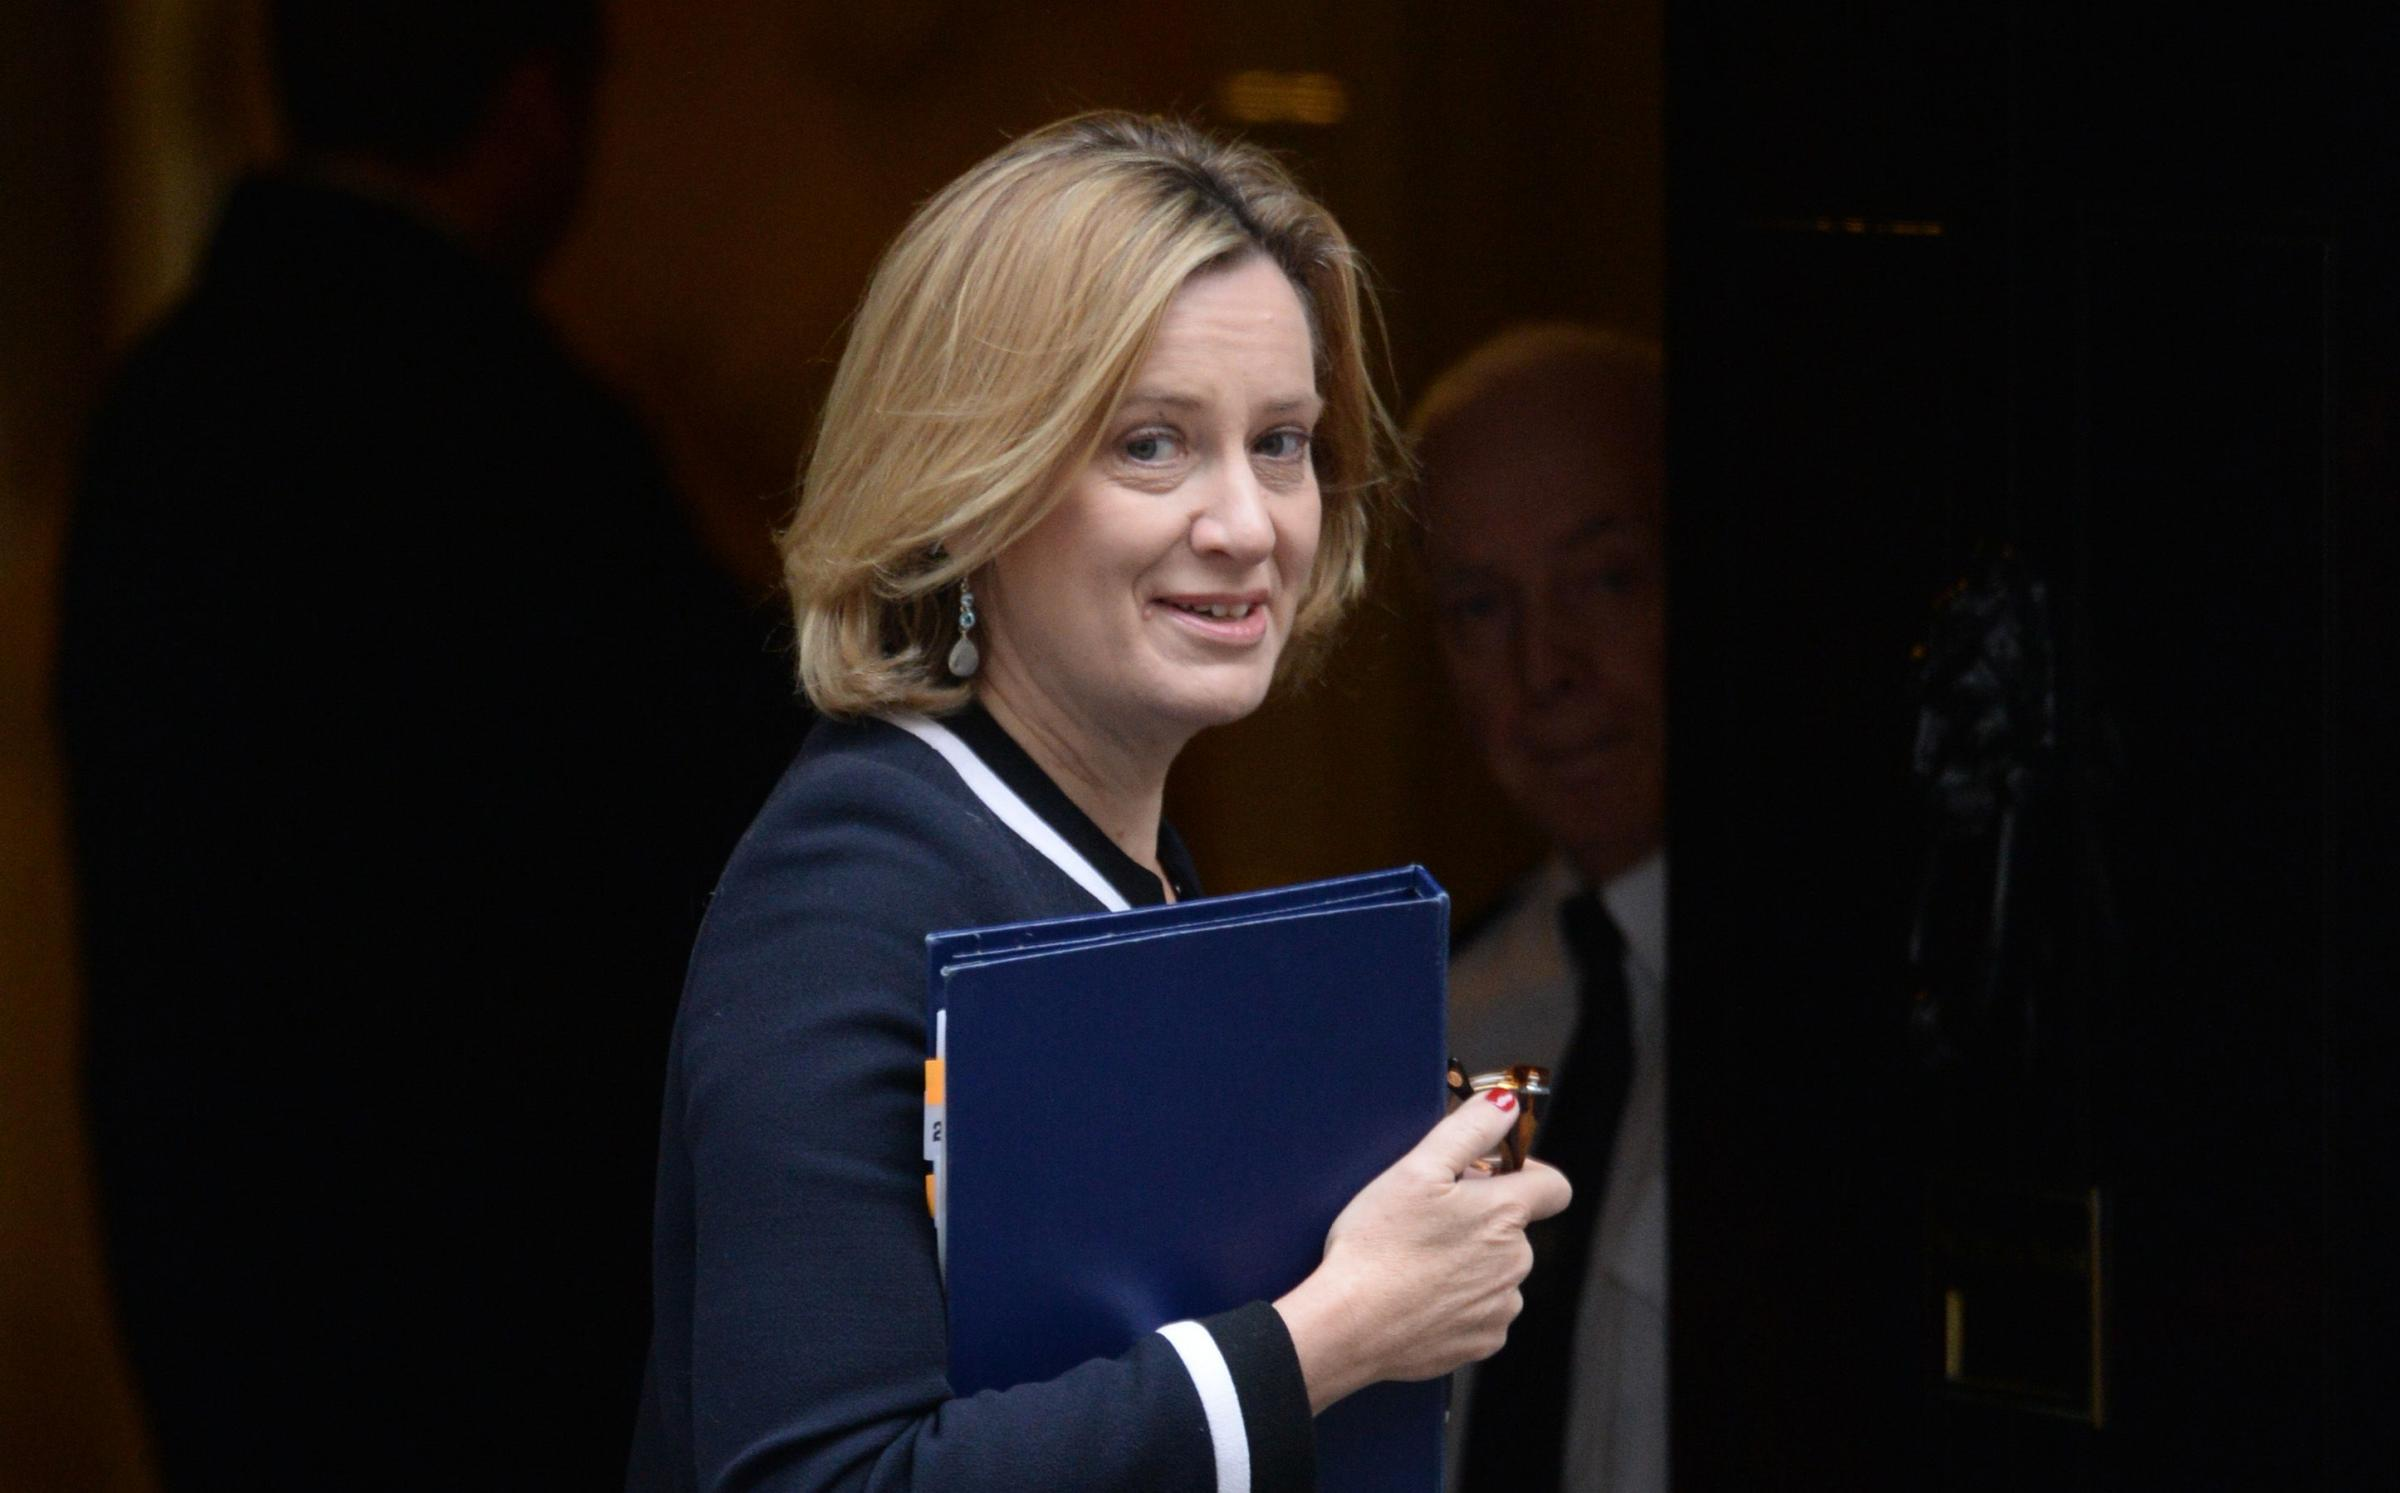 Amber Rudd made the admission during DWP quesitons